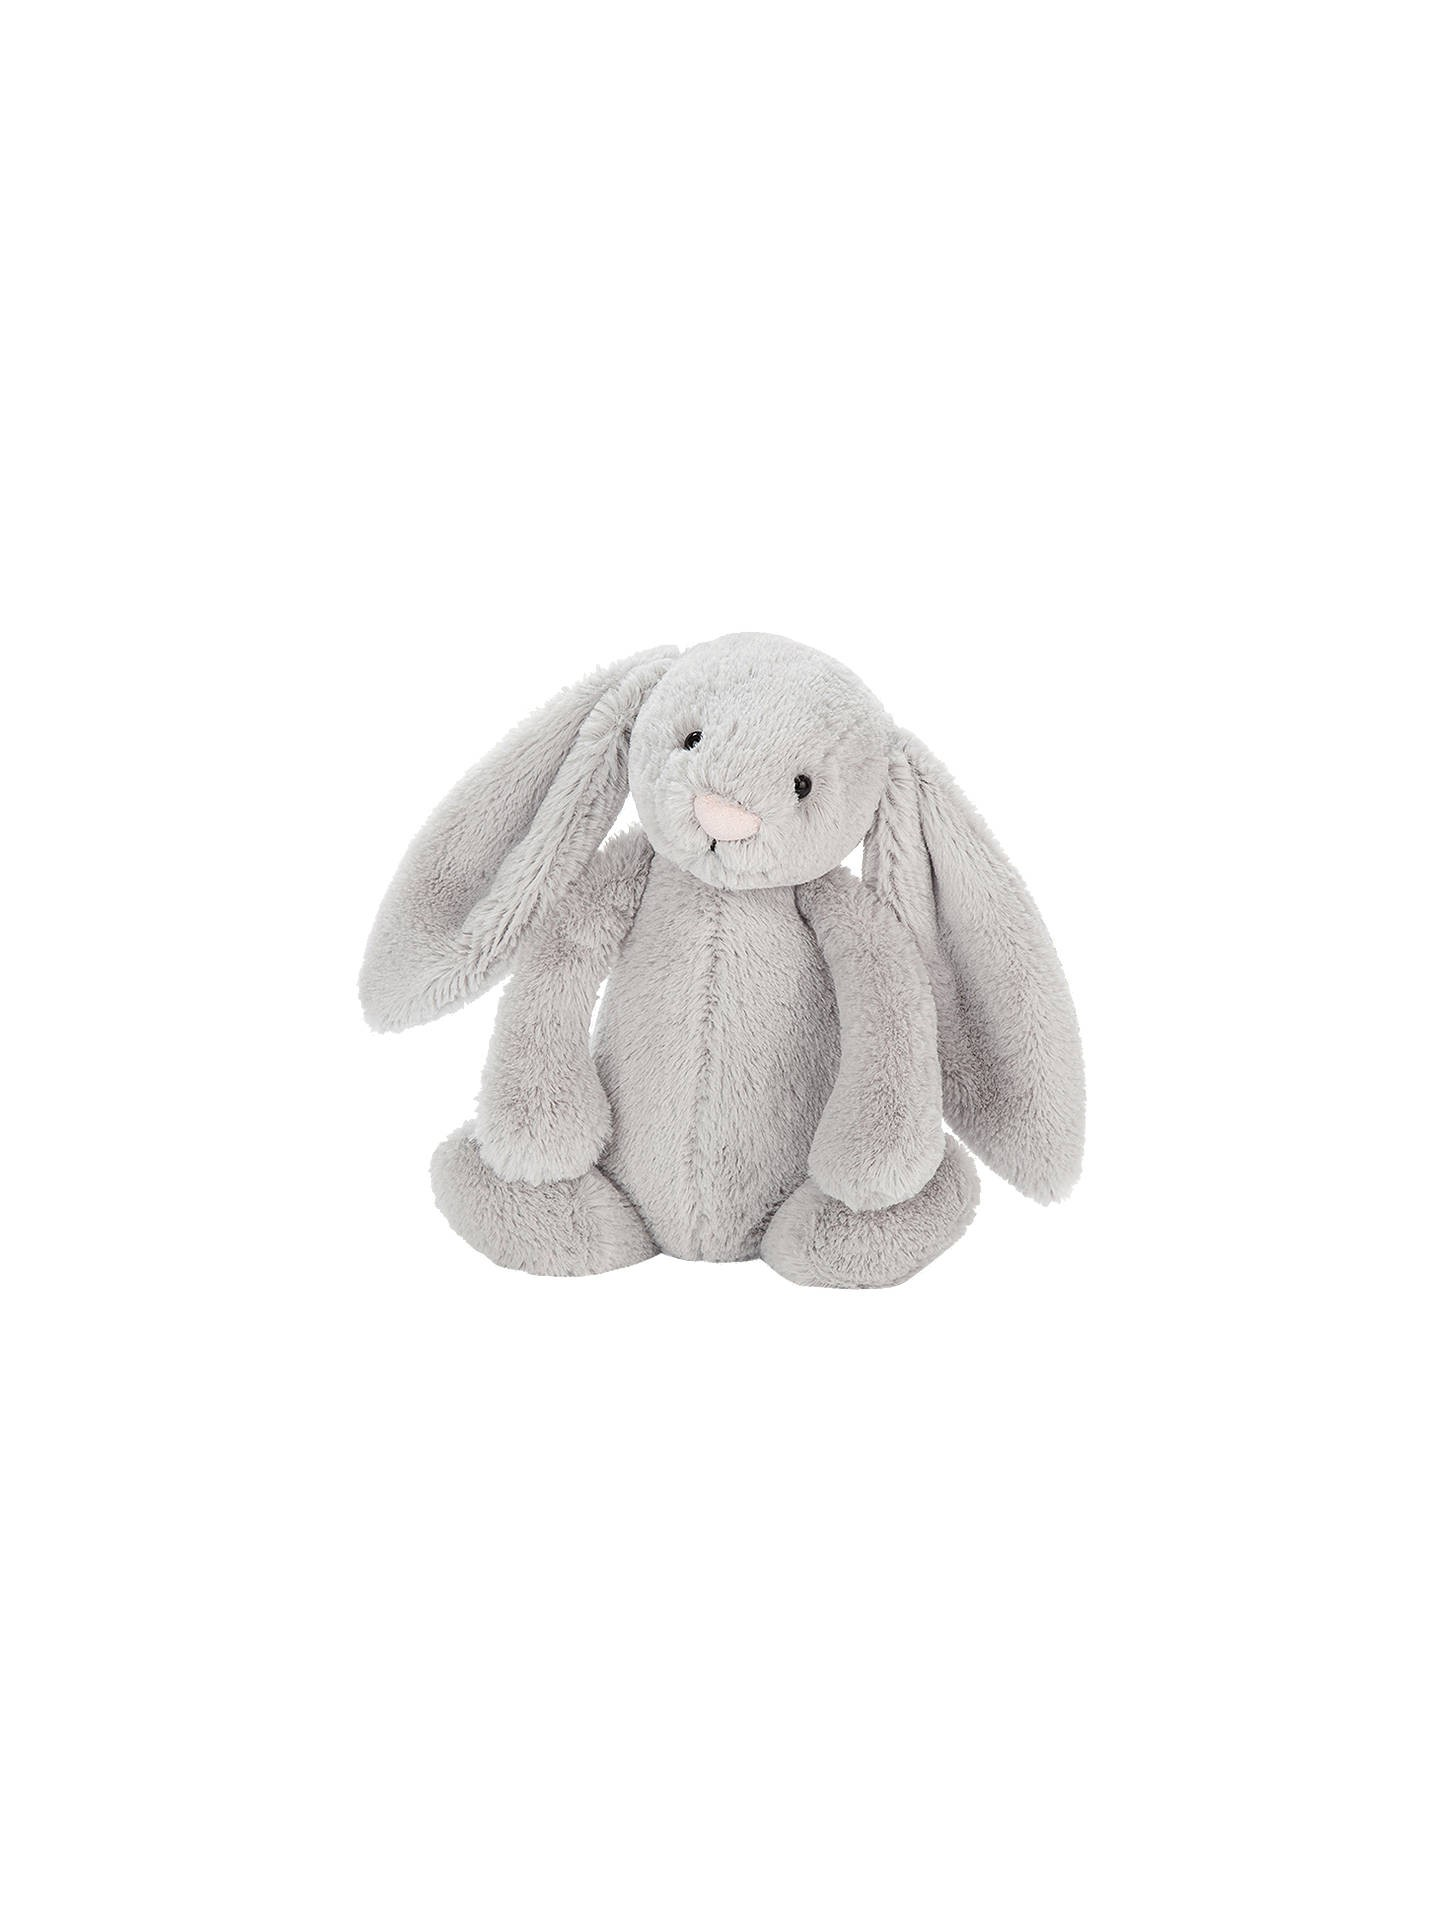 15 Beautiful Bunny Buys